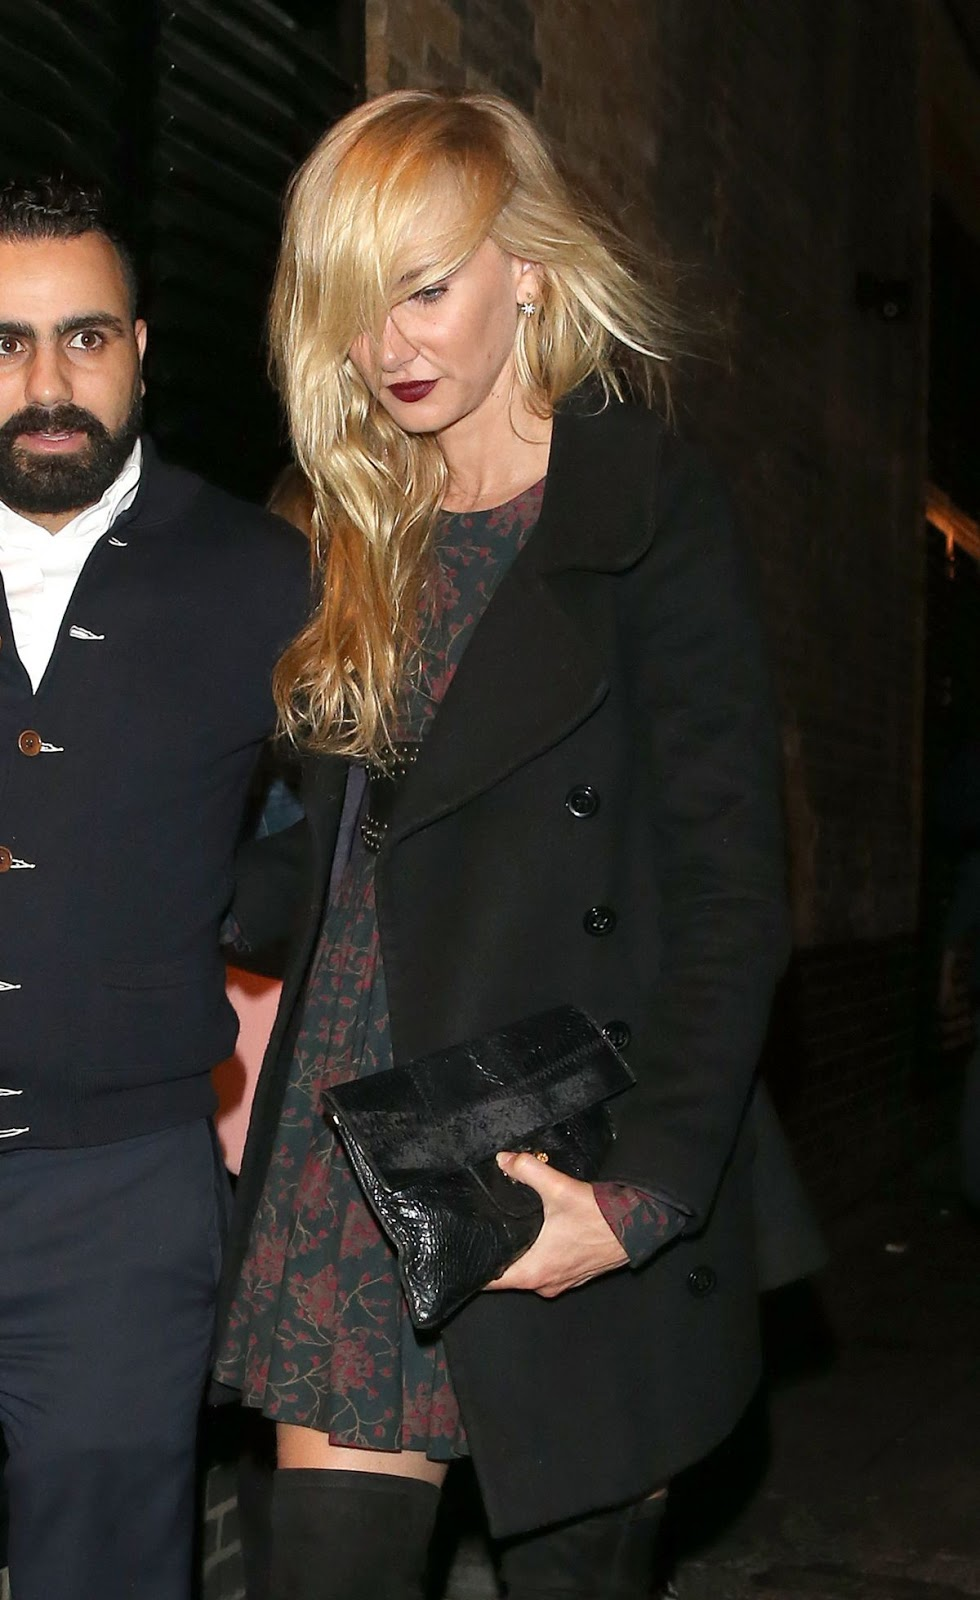 Kimberly Stewart Leaves Chiltren Firehouse In London